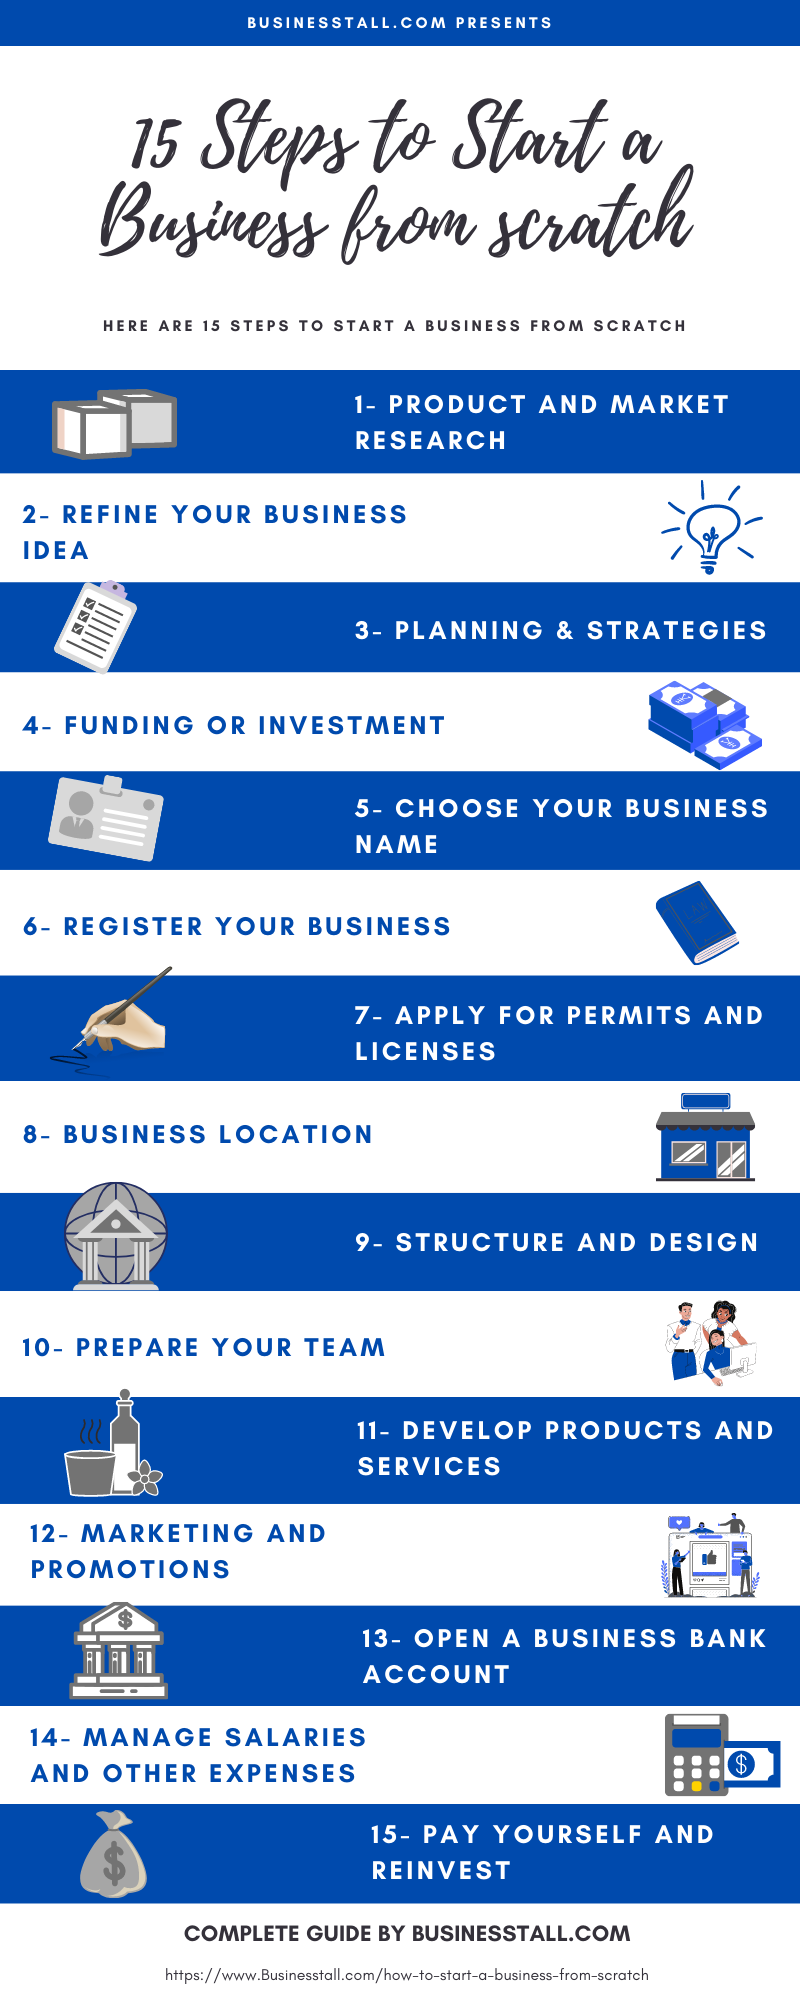 15 Steps to start a Business from scratch - Businesstall